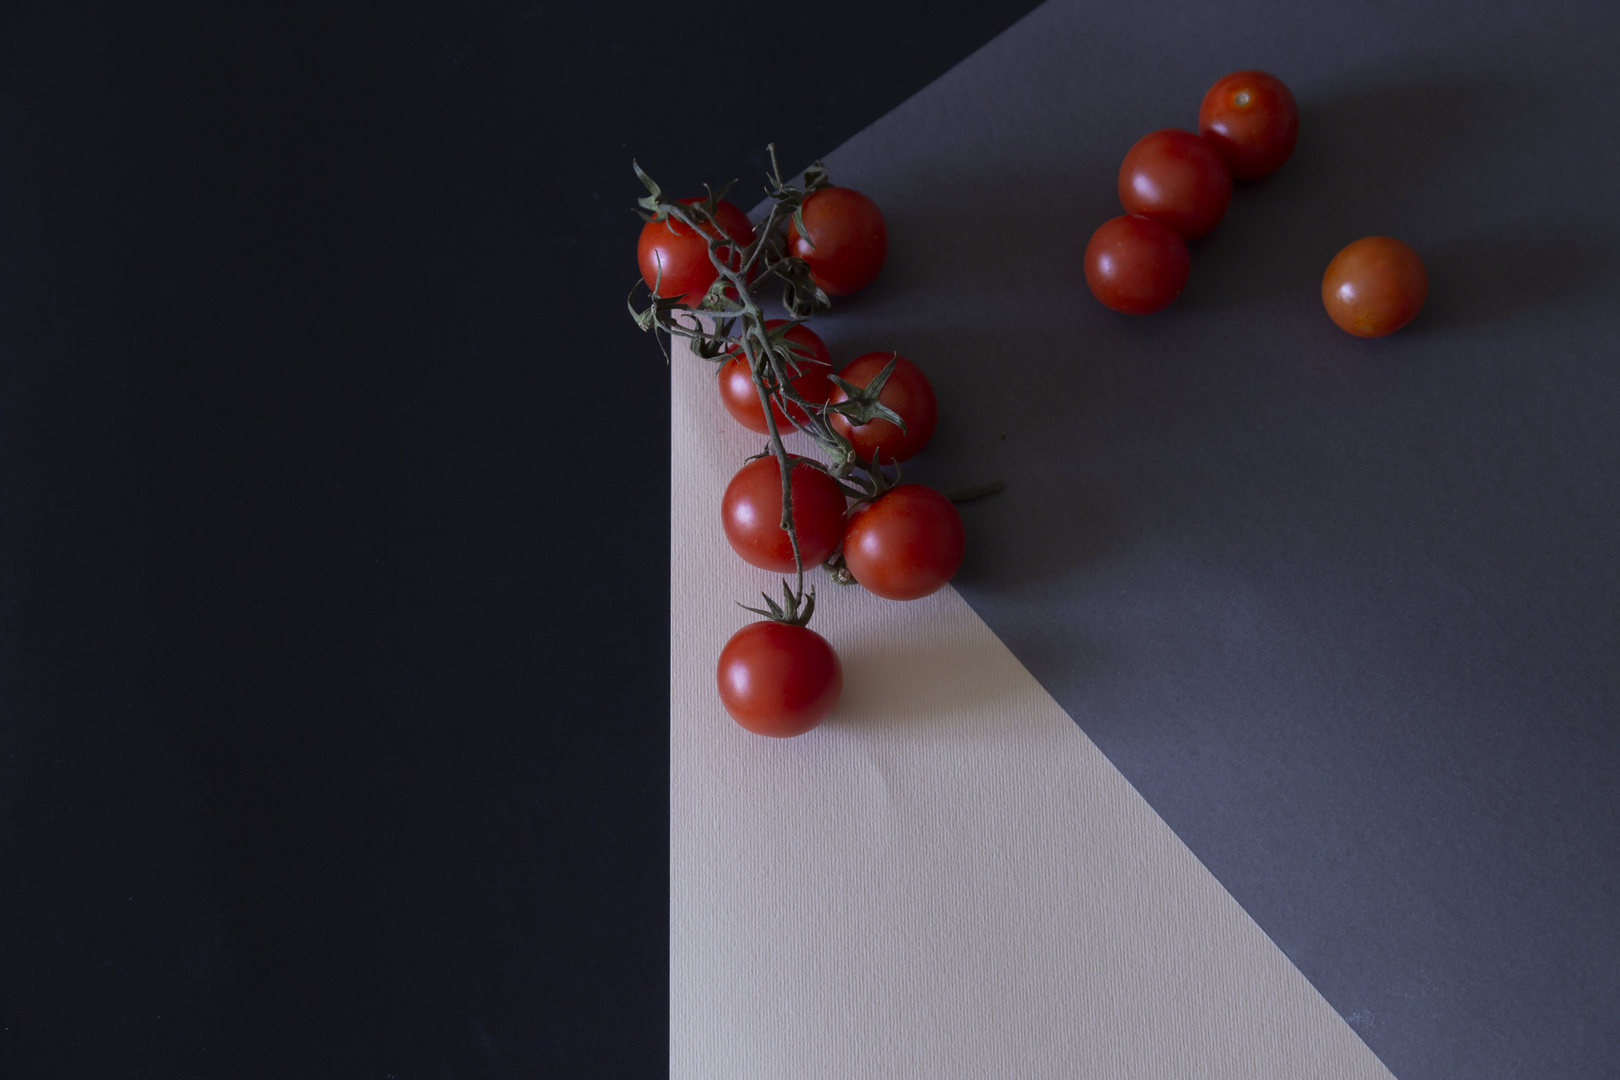 cherry tomatoes climbing in a rope